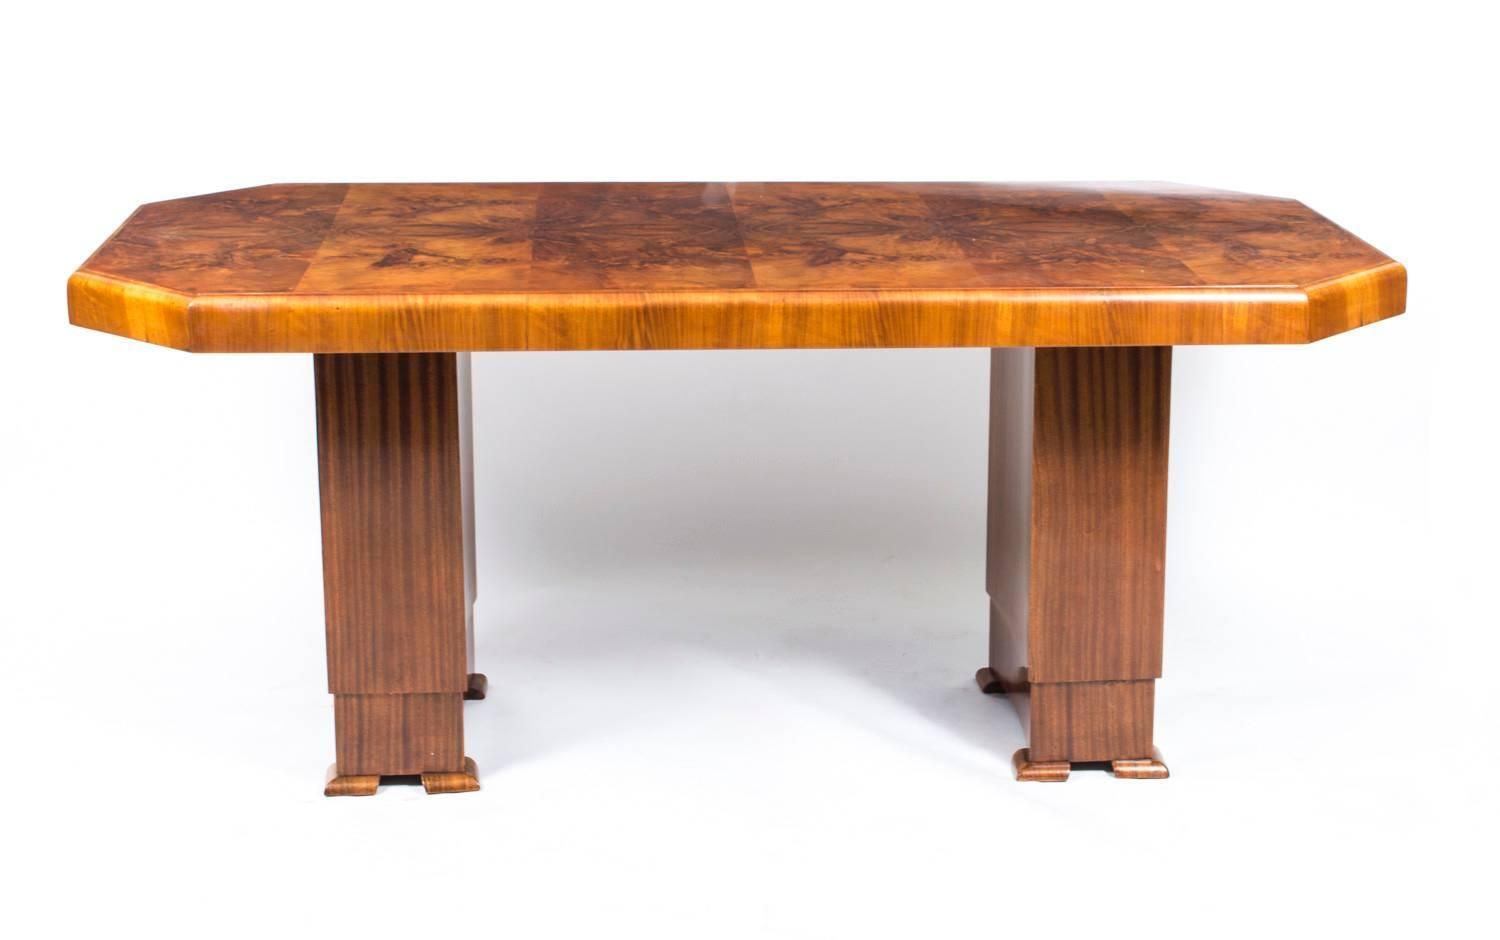 Antique Art Deco Dining Table Burr Walnut circa 1930 For